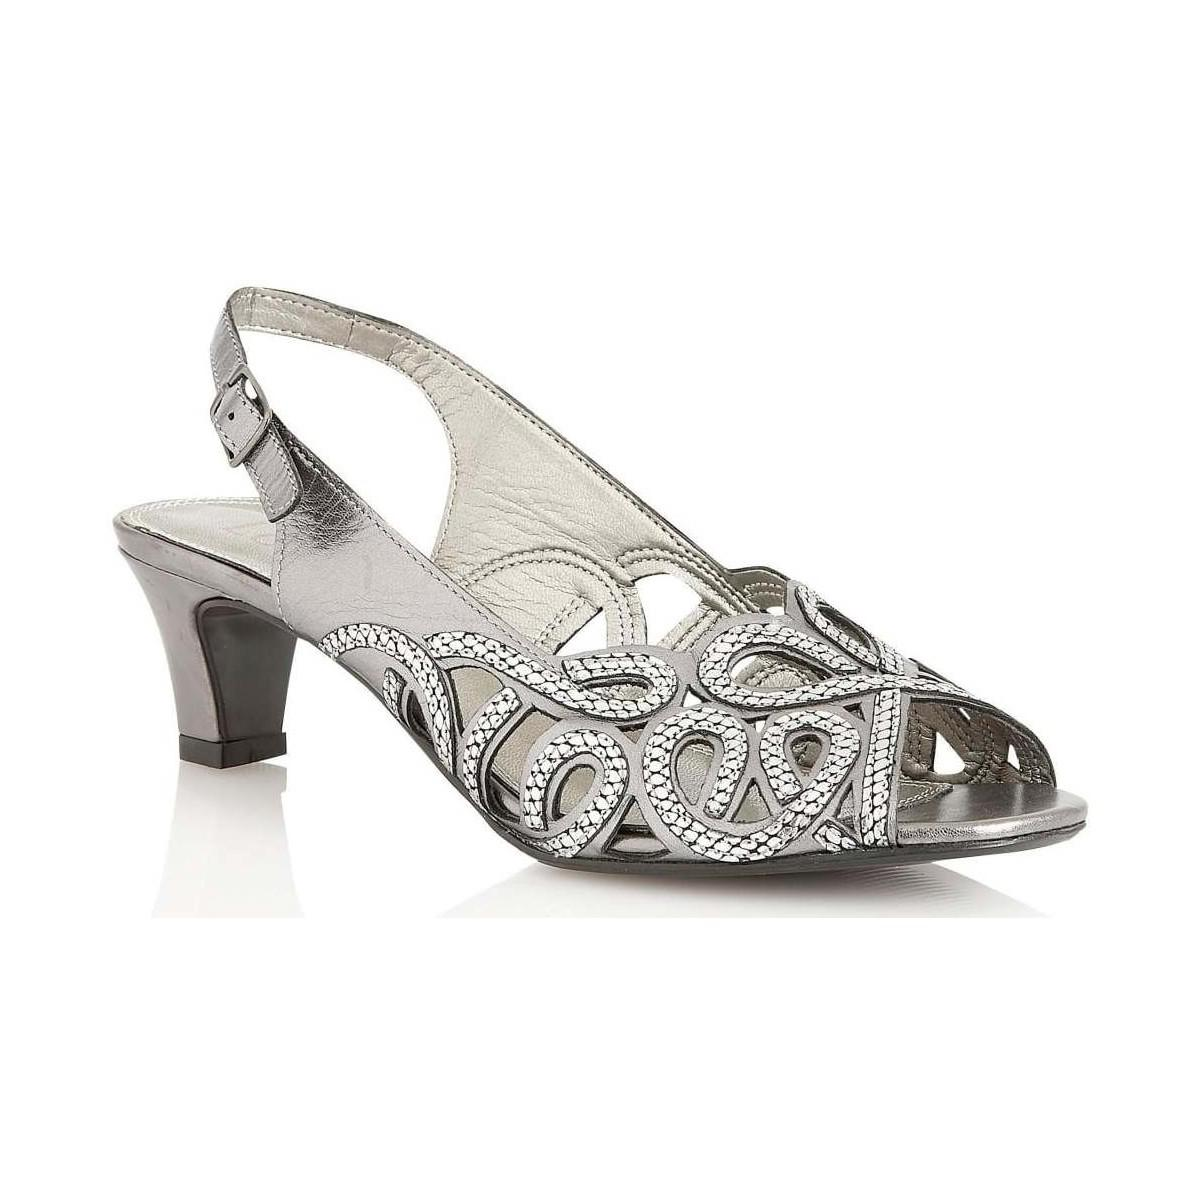 ff09b230052d6 Lotus Harper Womens Peep Toe Sandals Women's Sandals In Silver in ...